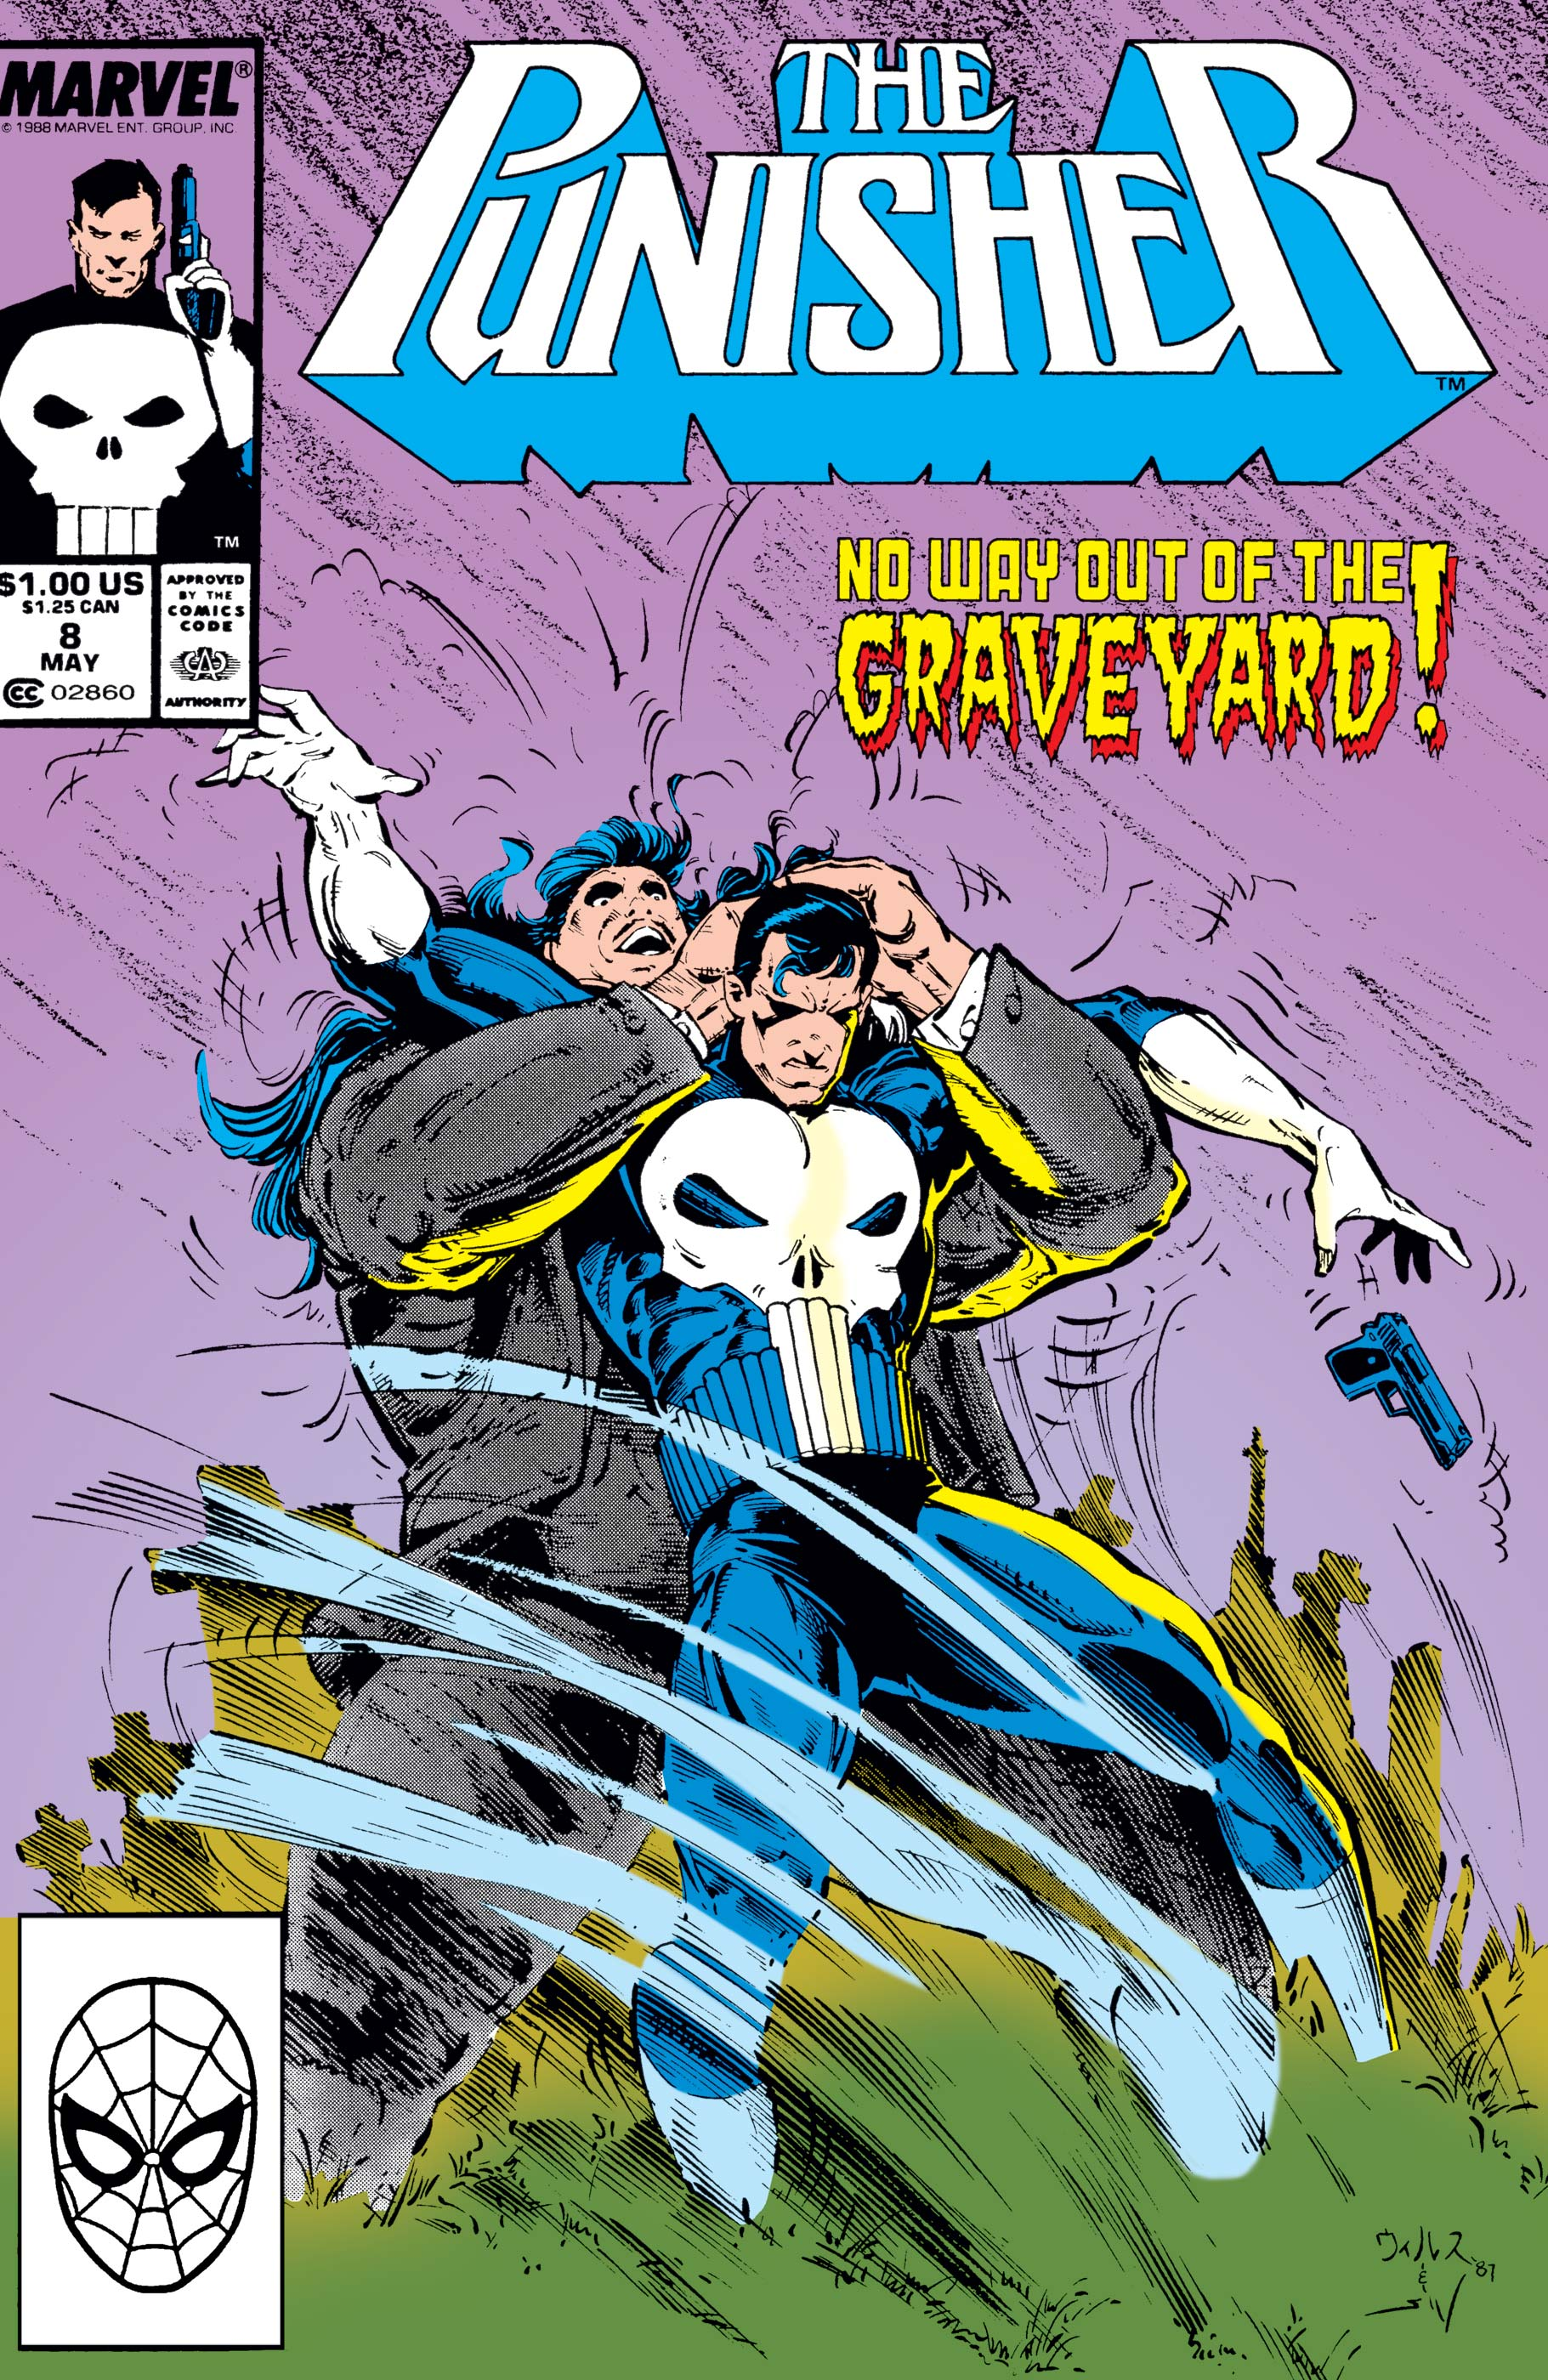 The Punisher (1987) #8